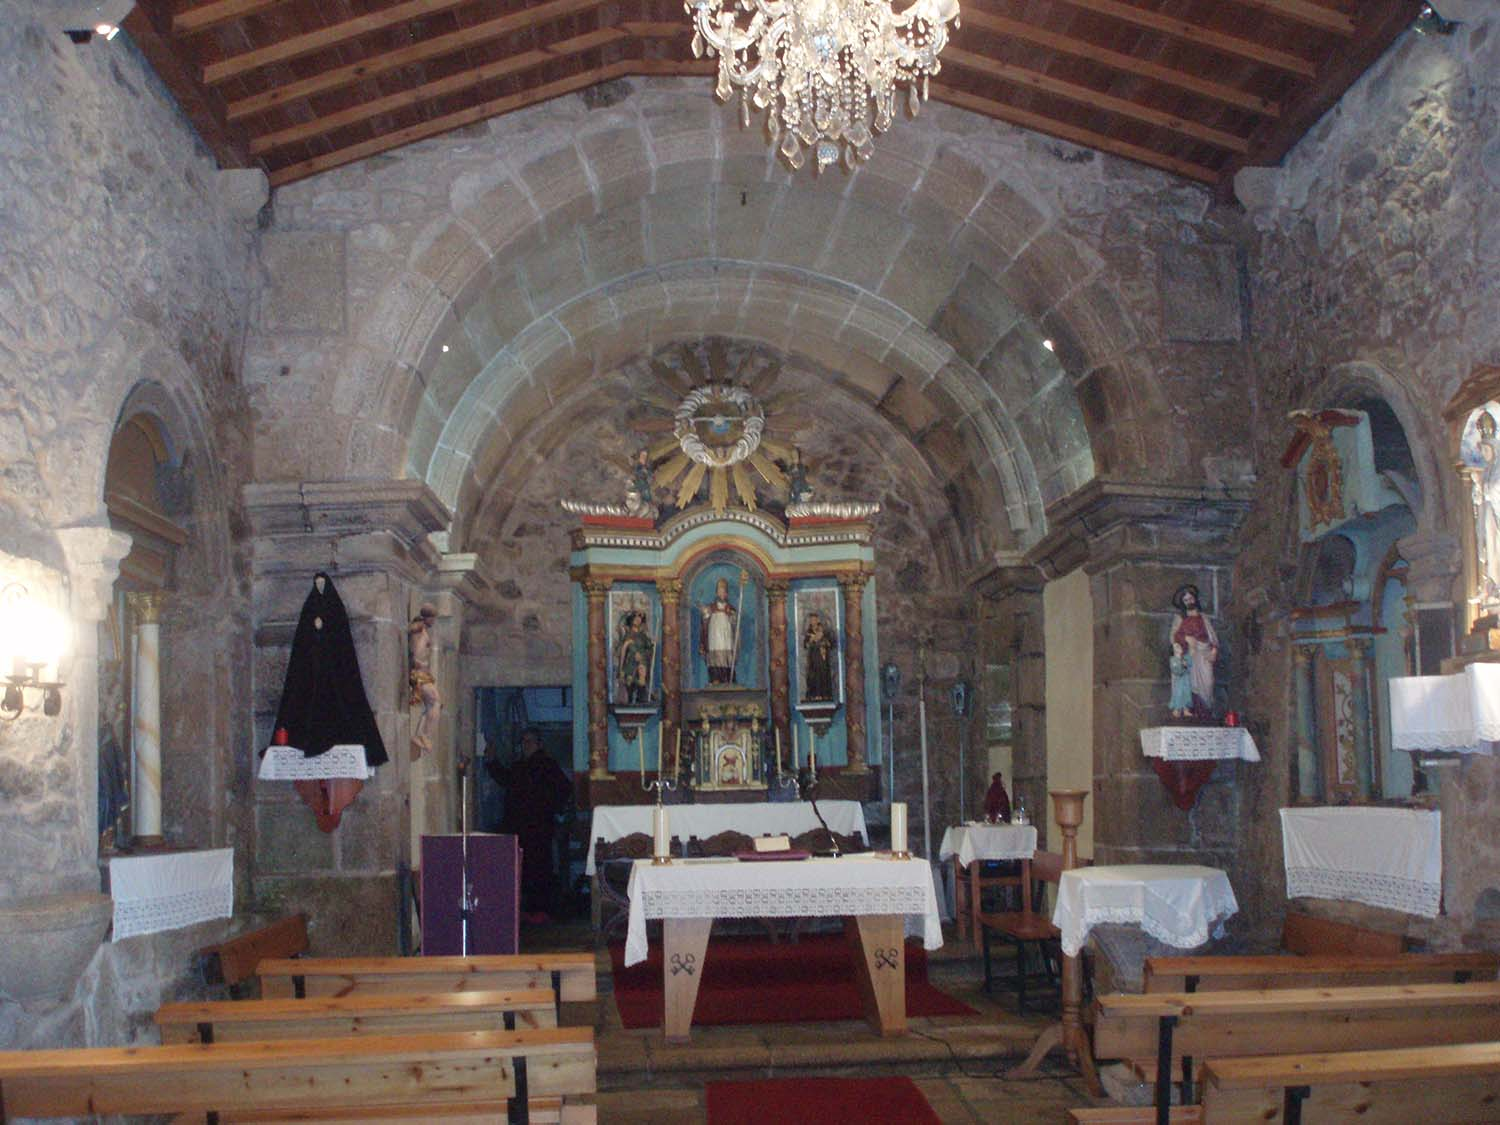 Nave central co altar maior [Foto EDR]